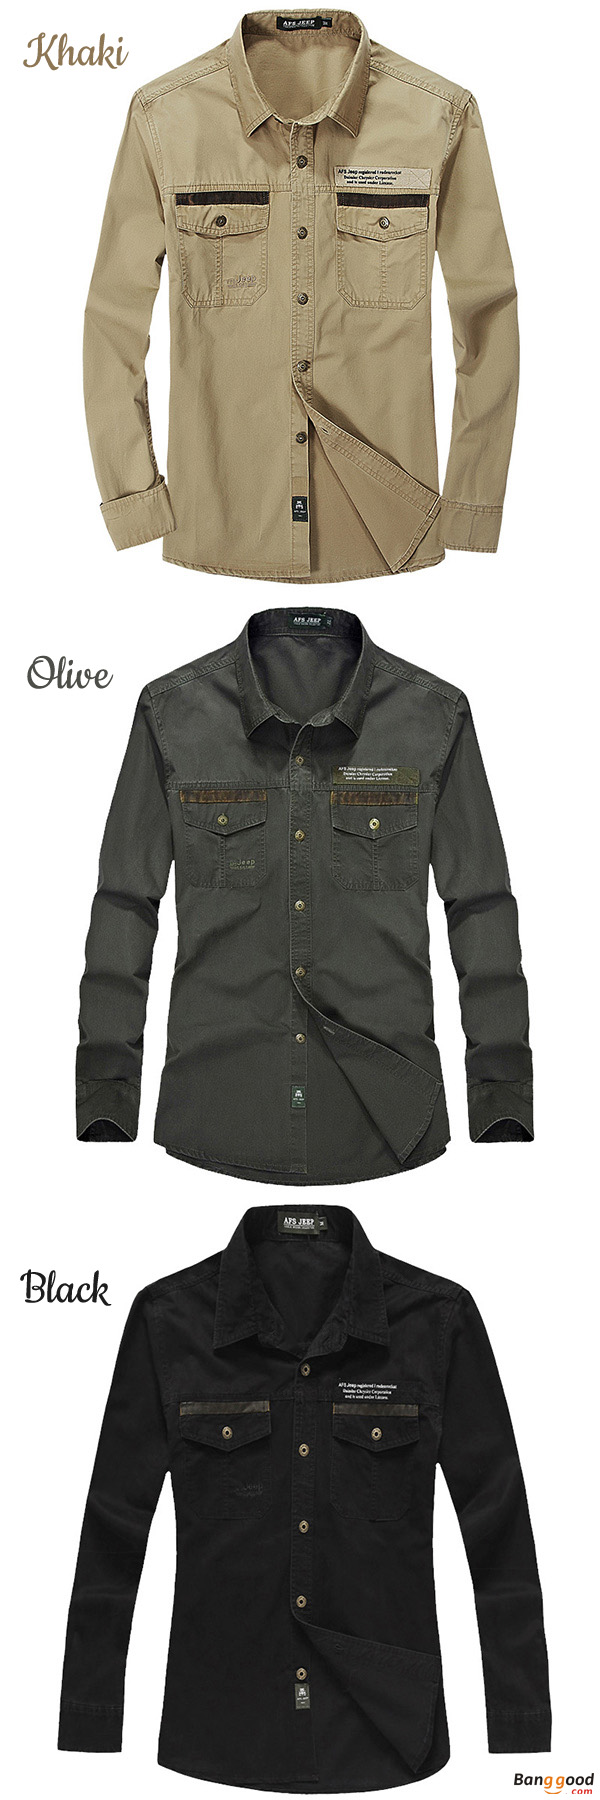 Plus Size Casual Cotton Long Sleeve Solid Color Lapel Men Work Shirts Tops From Men S Clothing On Banggood Com Work Shirts Plus Size Shirts Long Sleeve Shirts